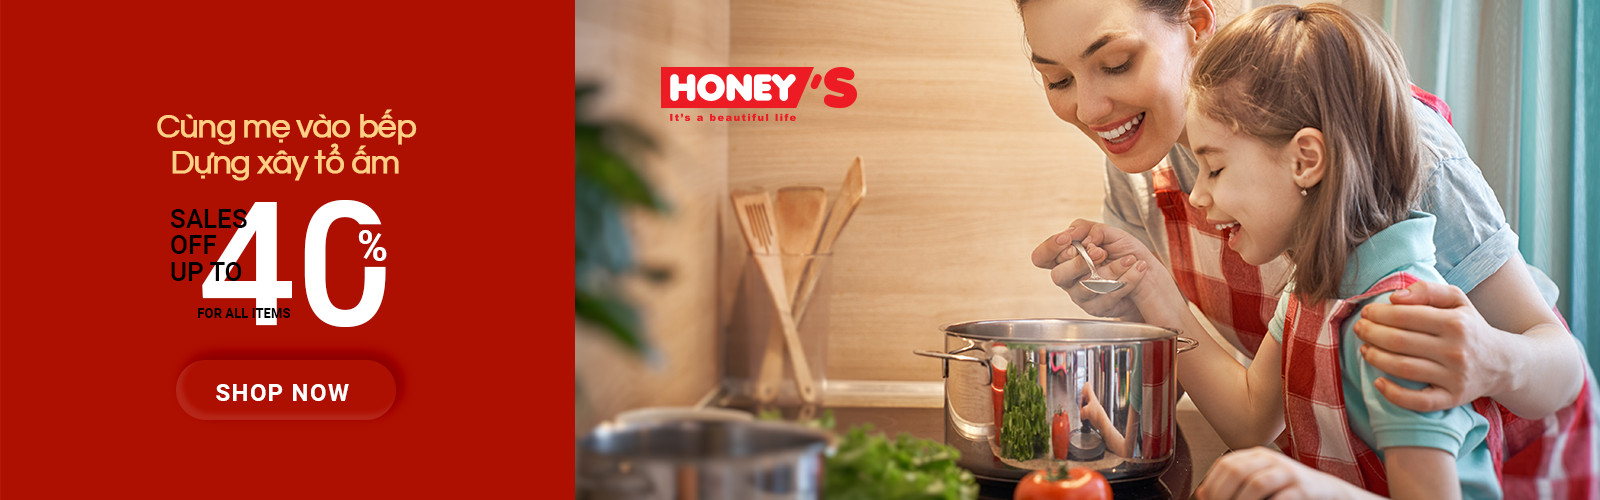 Honey'S: Intenational Woman's Day - SALES OFF 40% FOR ALL ITEMS